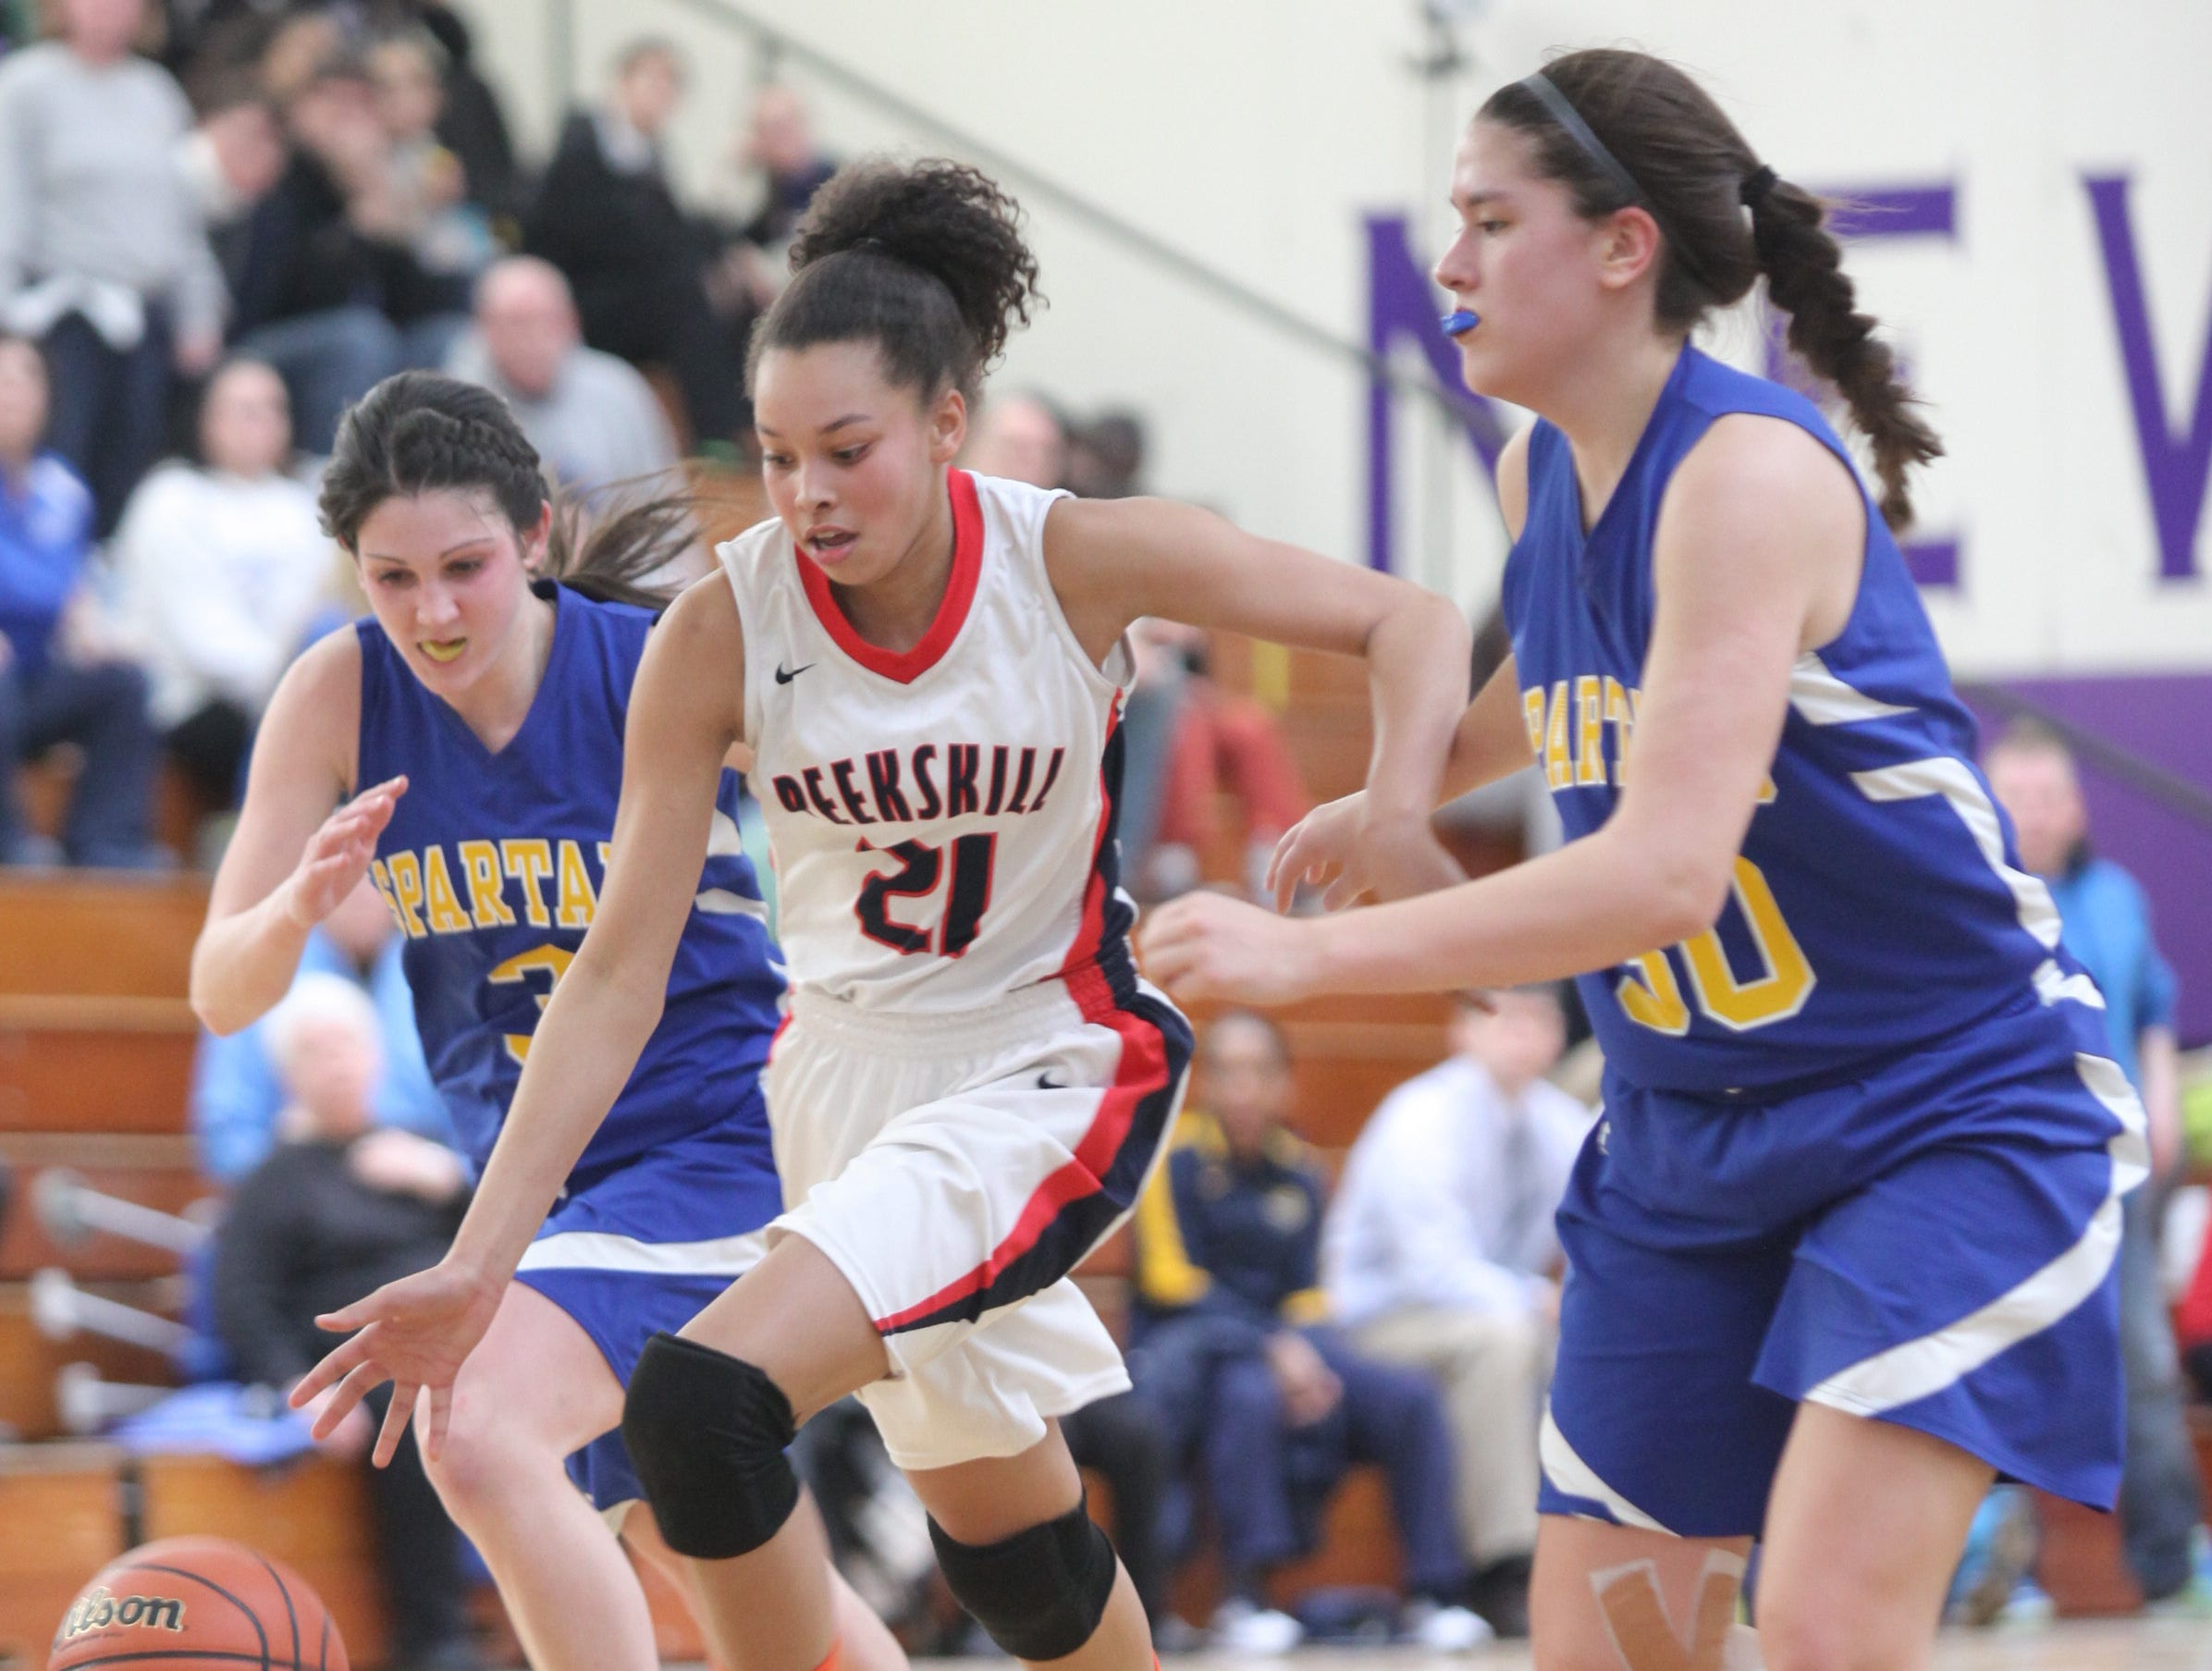 2014: Maine-Endwell's defense focuses on Peeksill's Lisana Burnett during Saturday's Class A state quarterfinal girls basketball game at New Rochelle High School. Maine-Endwell defeated Peekskill 62-47.